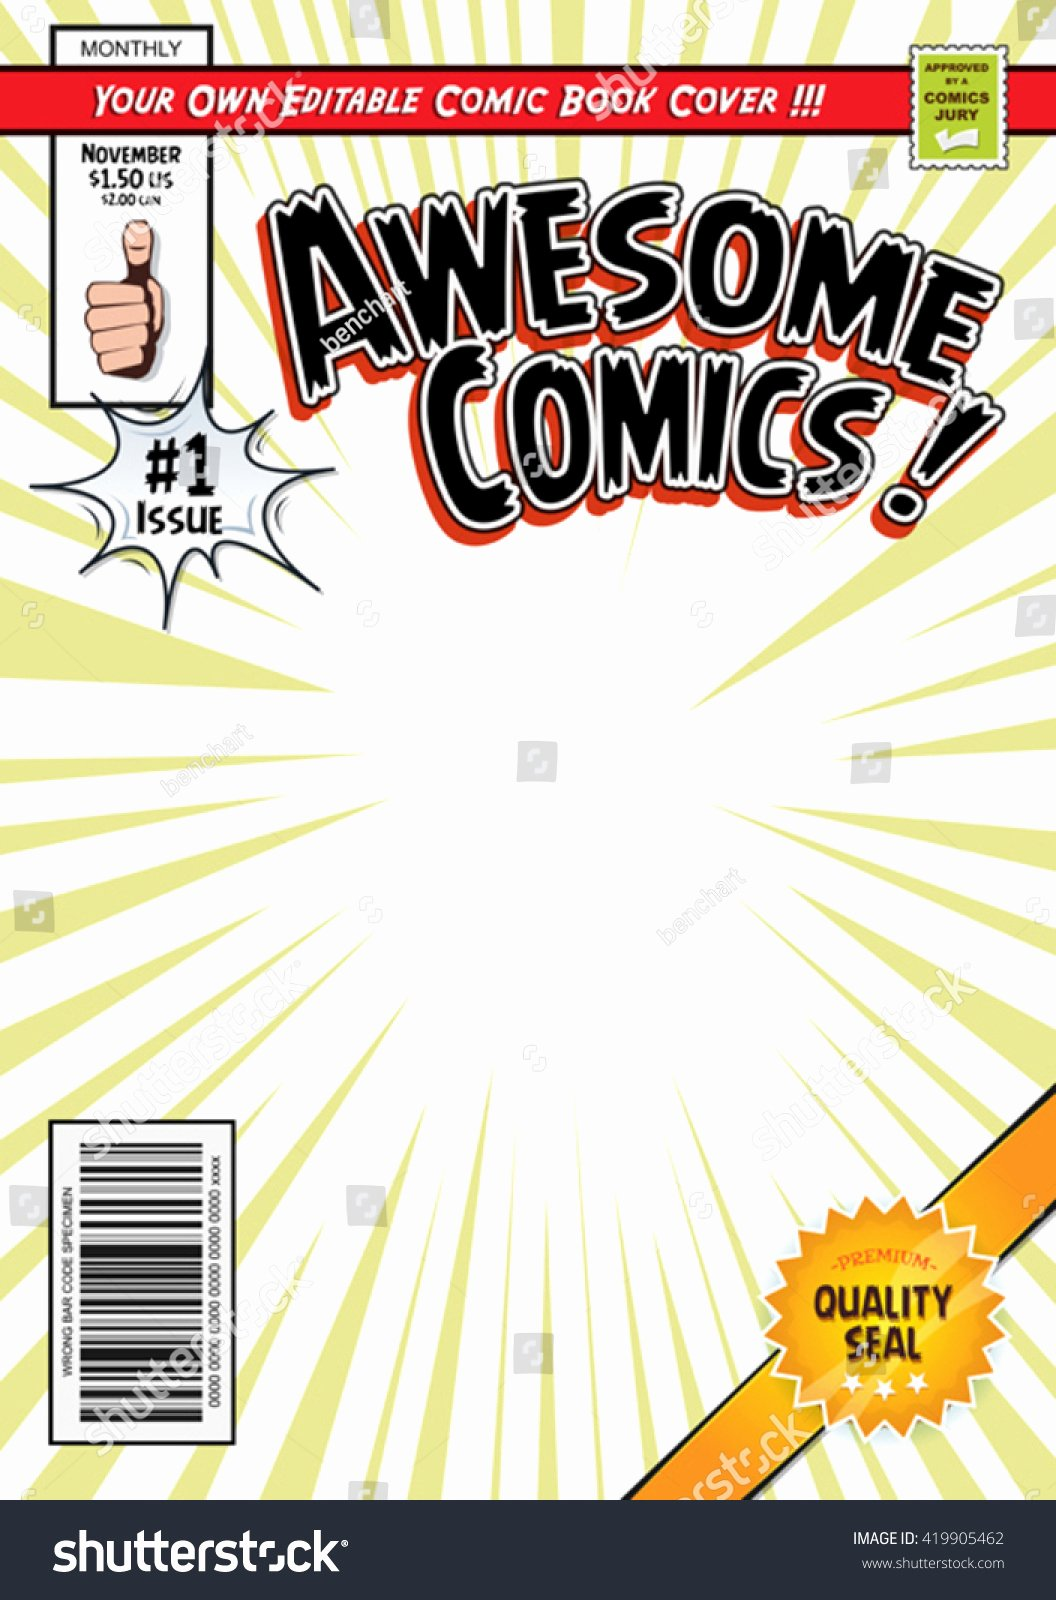 Comic Book Cover Template Fresh Ic Book Cover Template Illustration Cartoon Editable Stock Vector Shutterstock